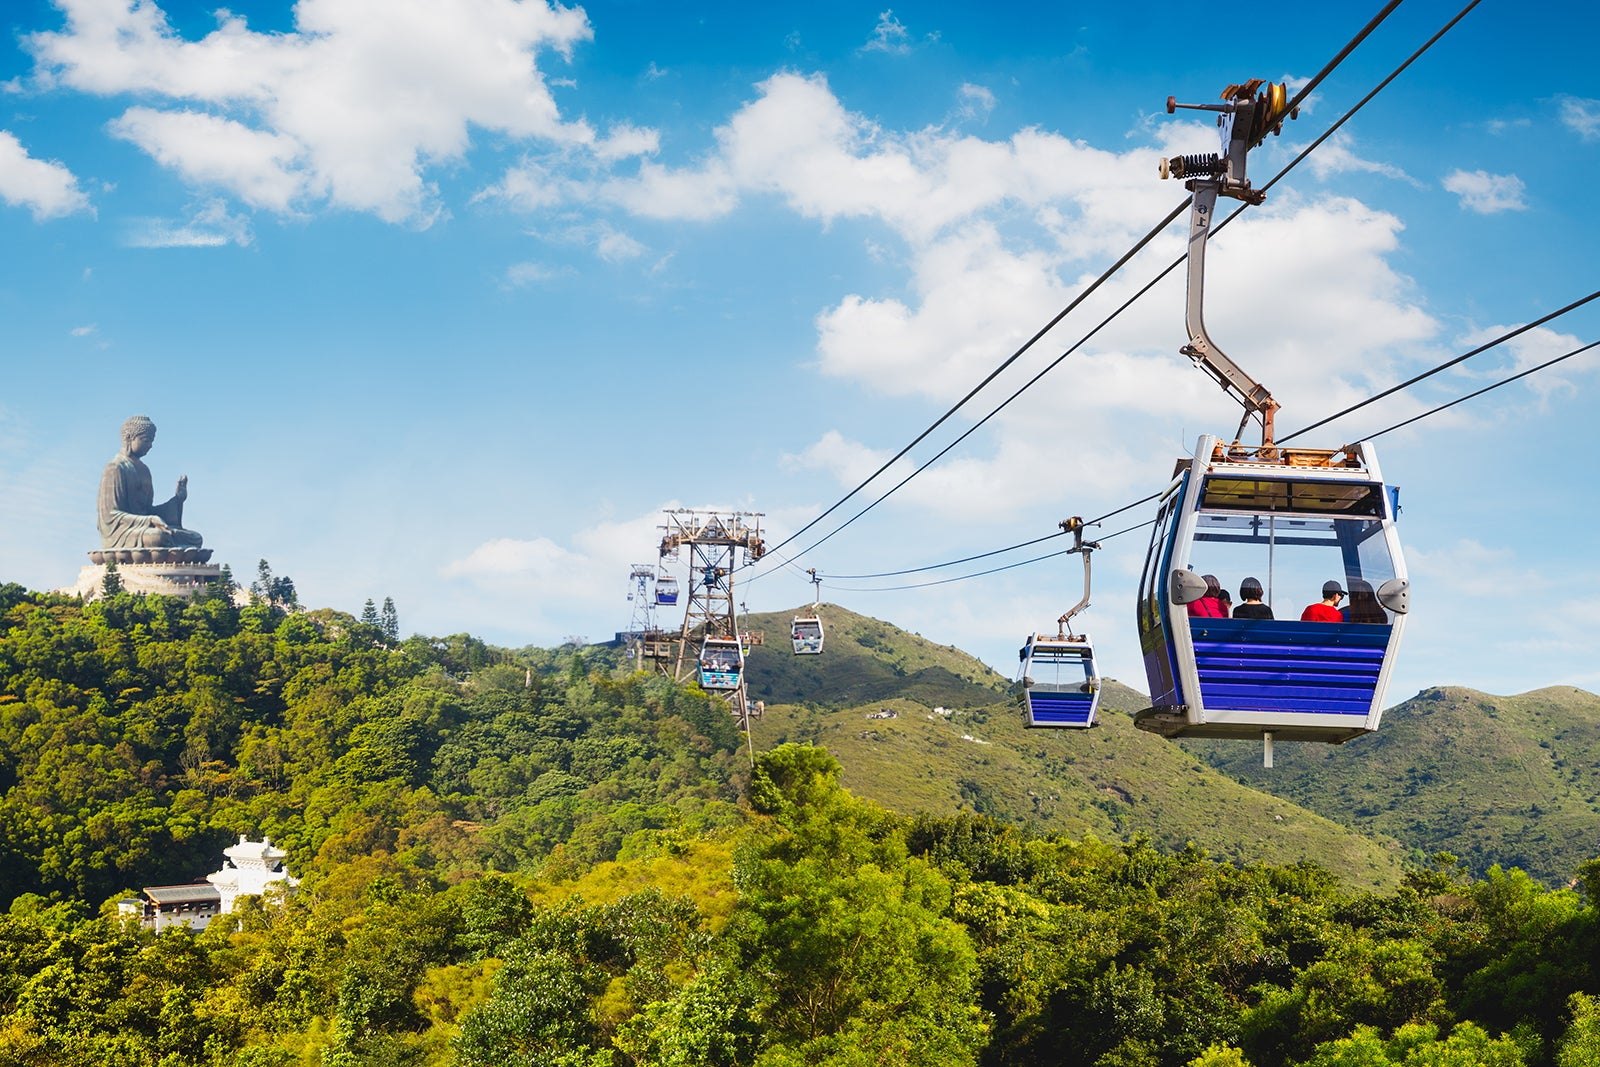 Ngong Ping 360 Hong Kong - Cable Car on Lantau Island